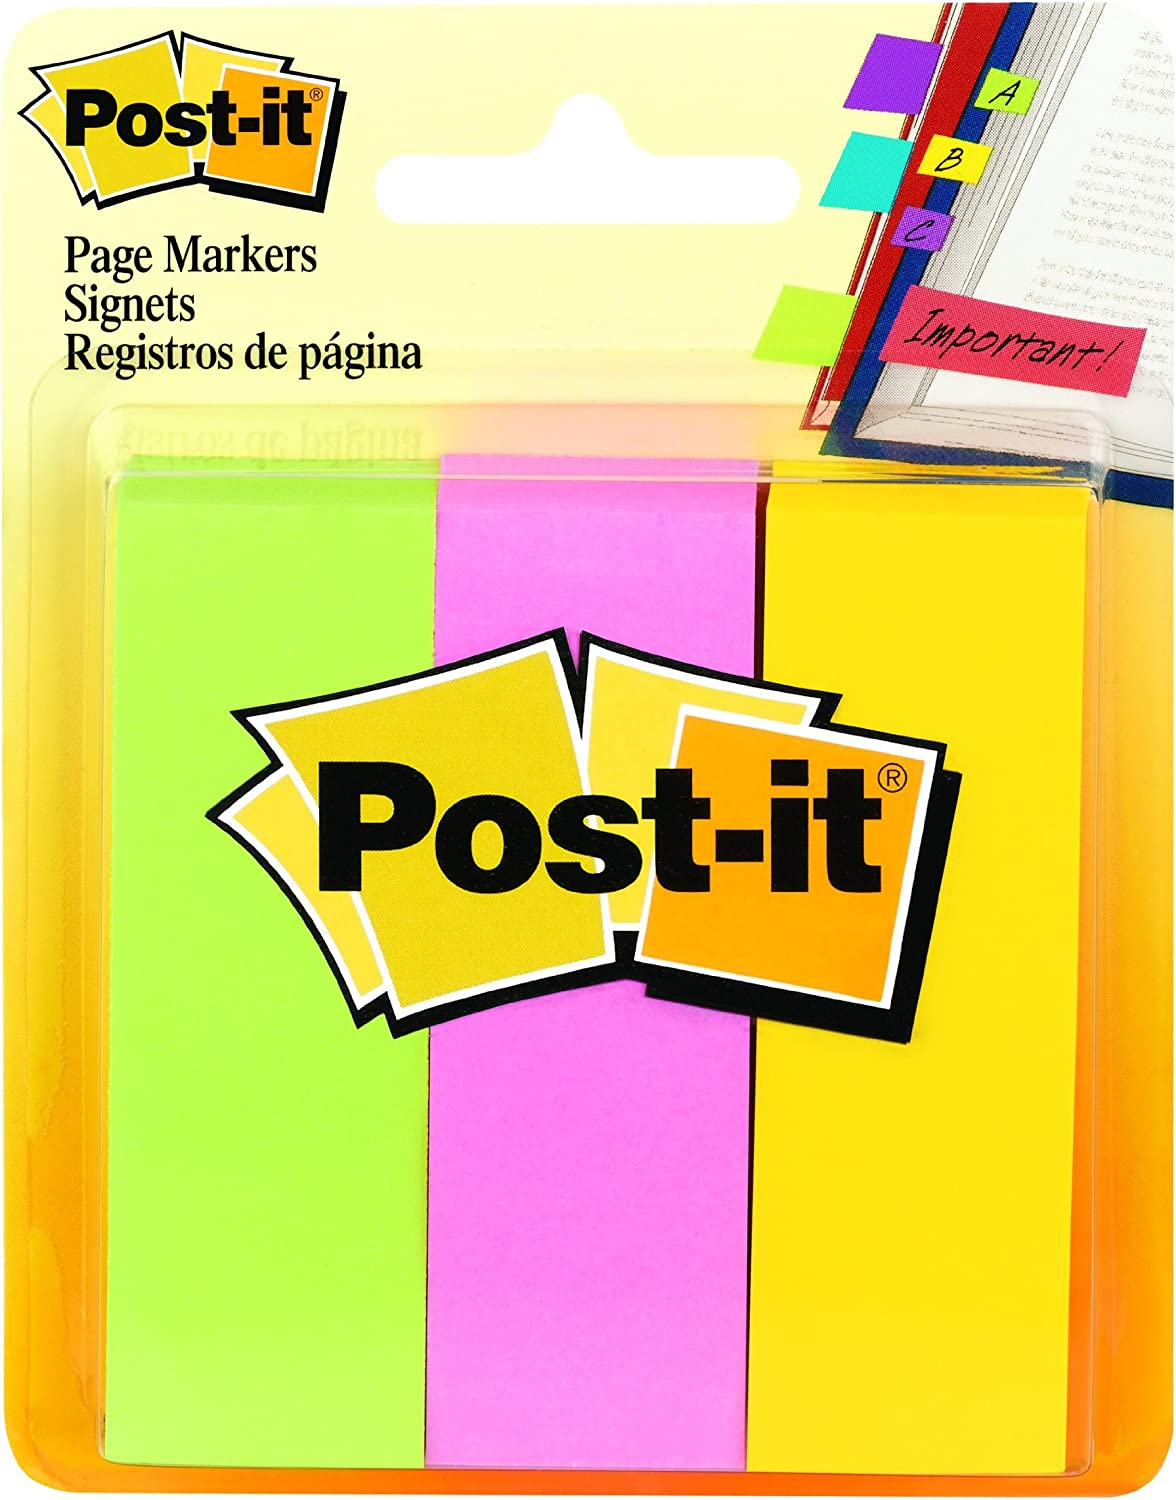 Post-it Page Markers 1 in Cheap super special price x A for 3 Ideal Temporary Be super welcome Marking